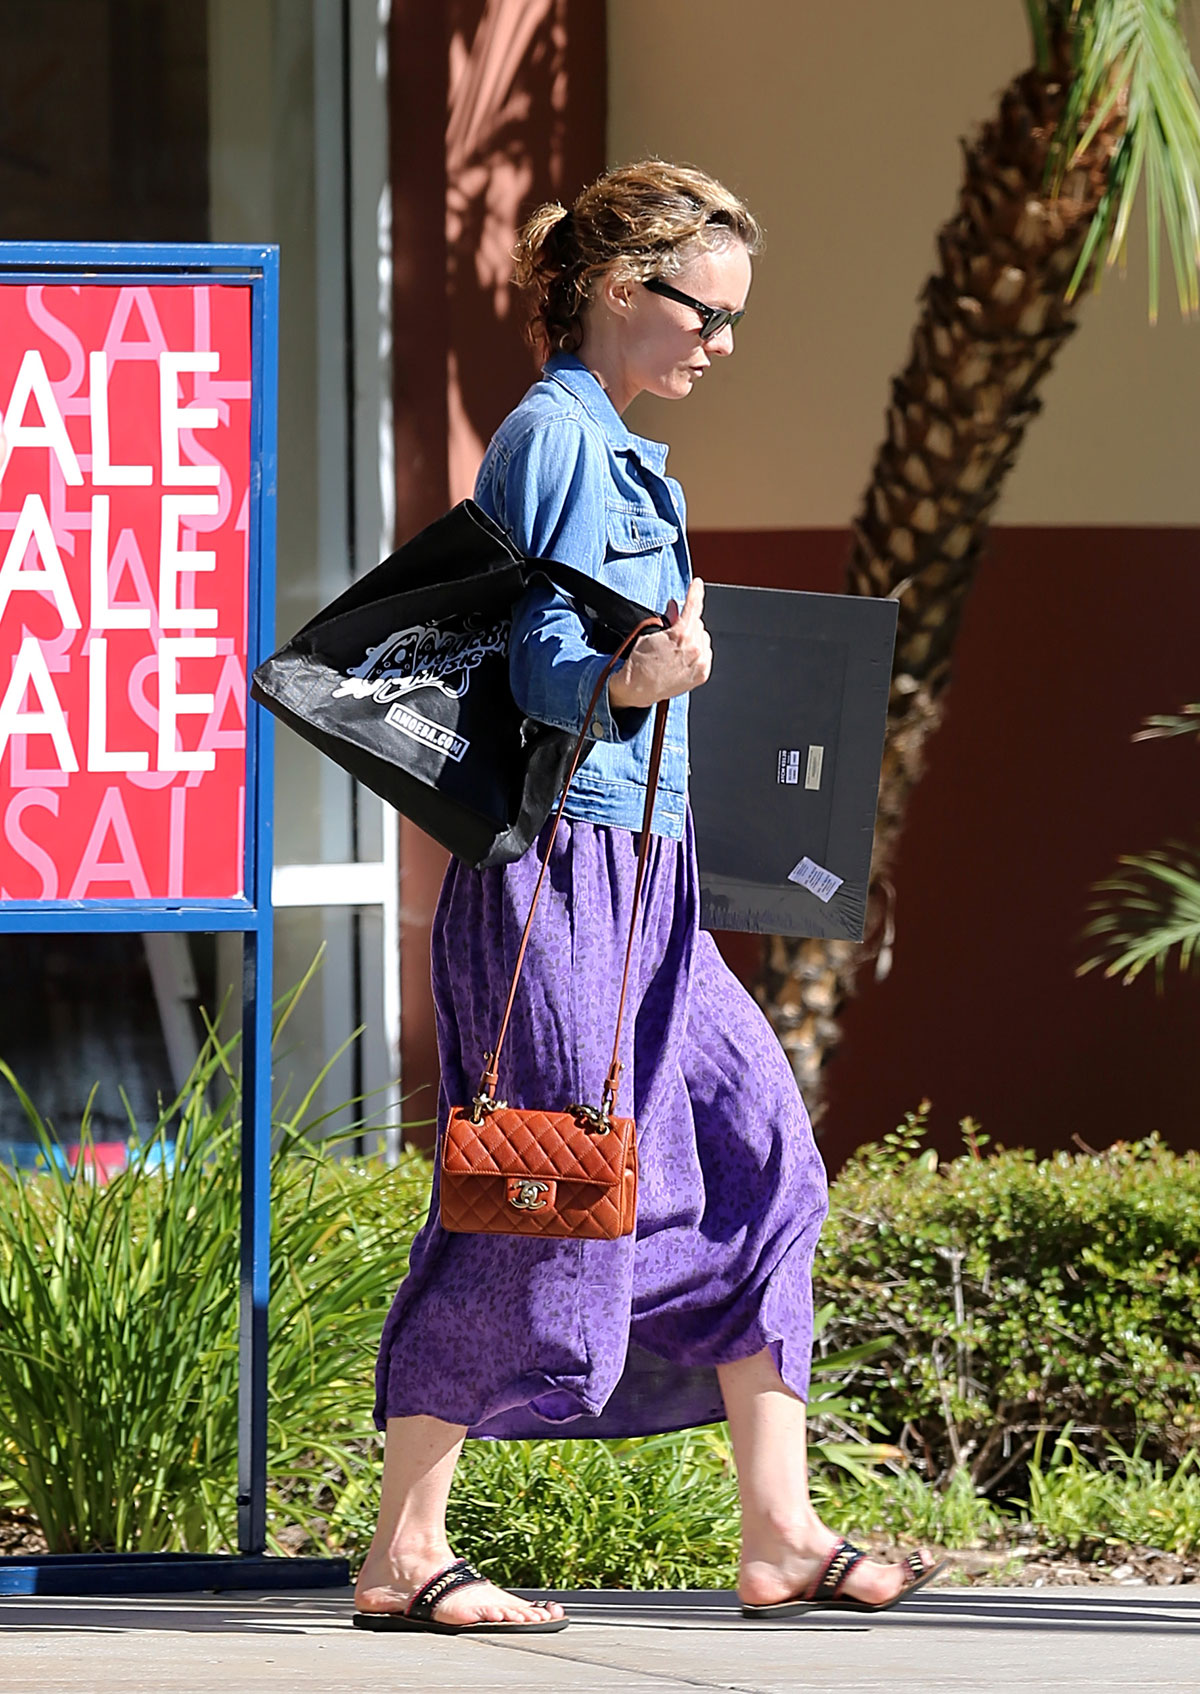 VANESSA PARADIS Shops at Aaron Brothers in Studio City Vanessa Paradis